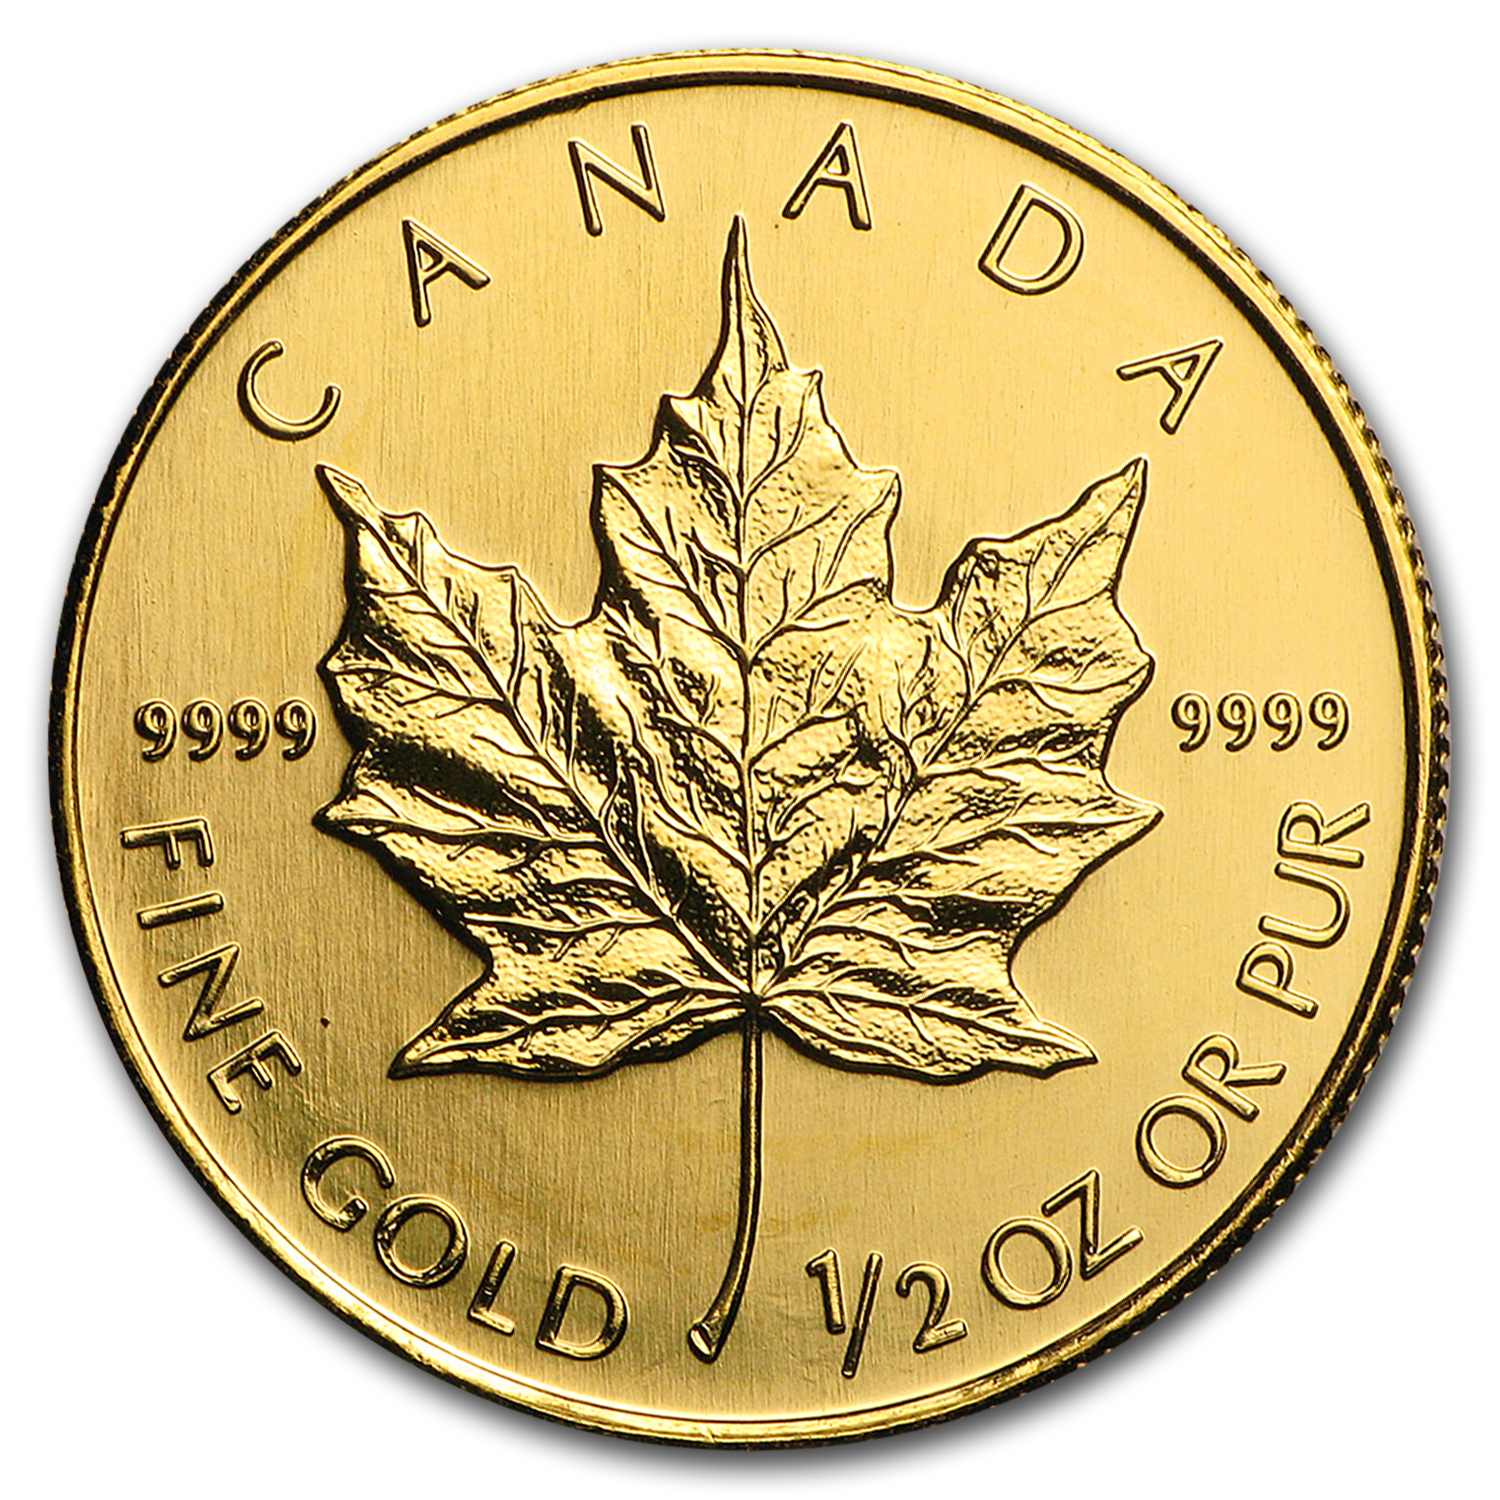 2007 Canada 1/2 oz Gold Maple Leaf BU